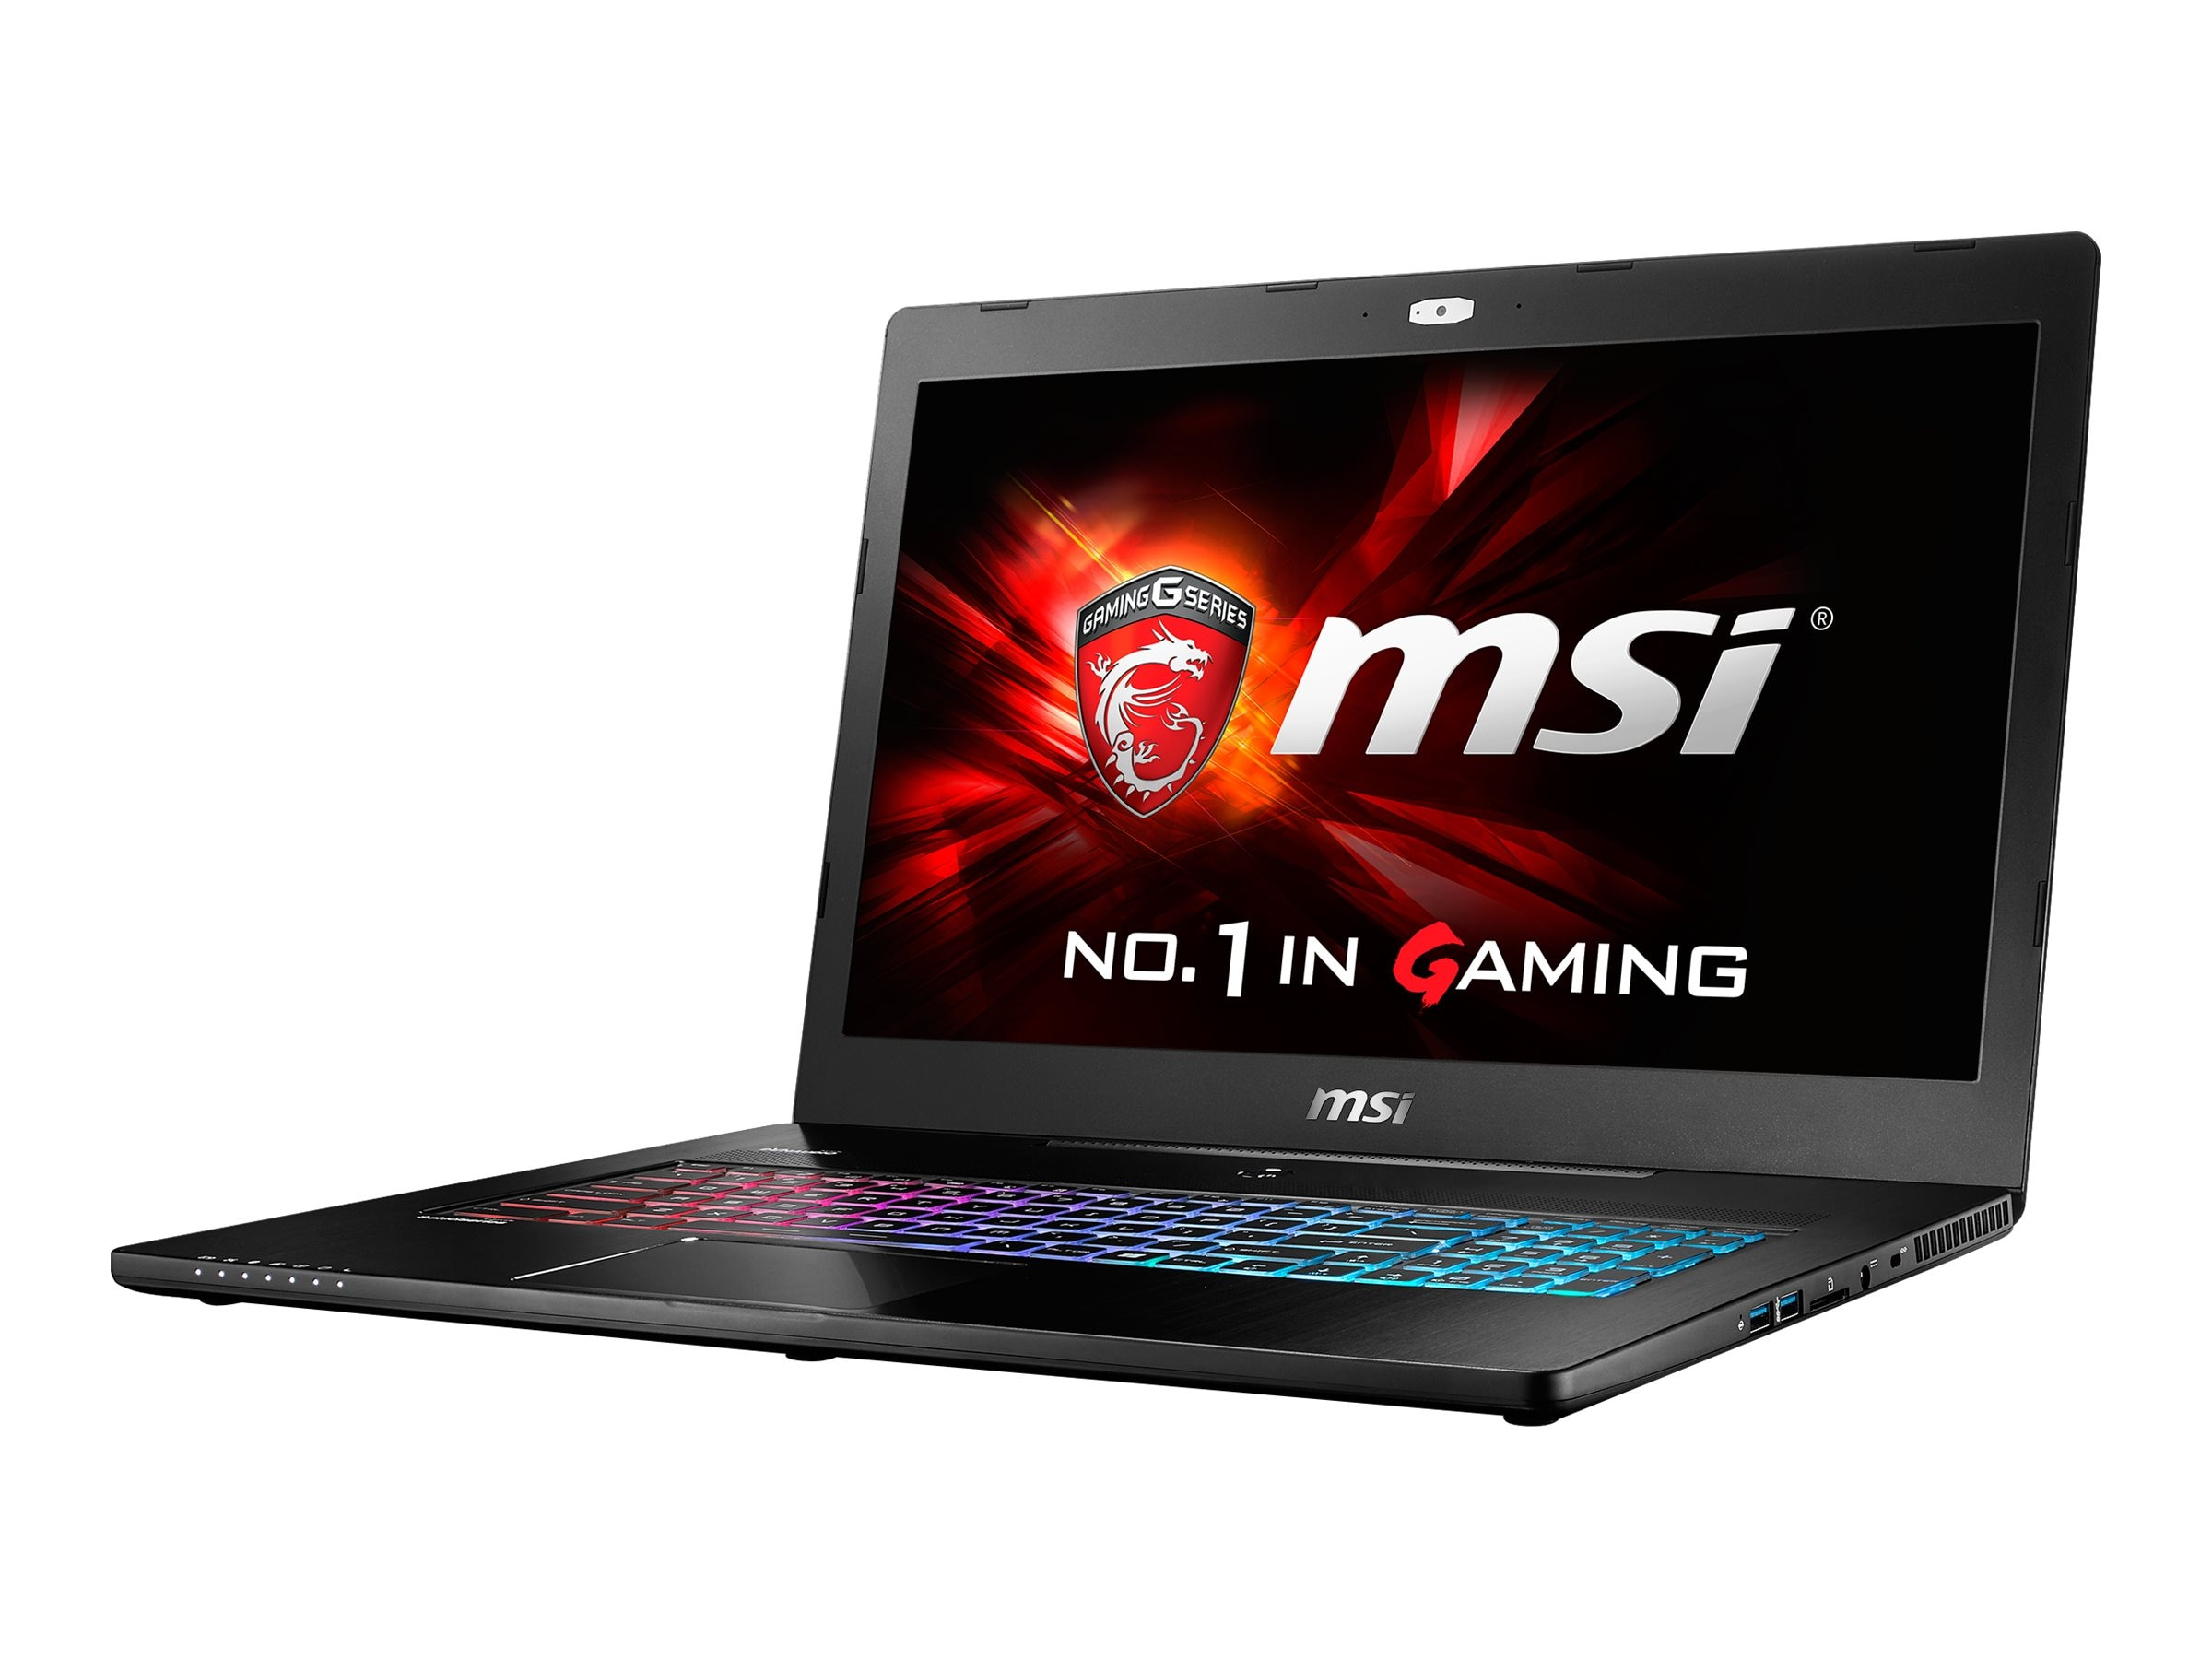 MSI GS72 Stealth-042 Core i7-6700 16GB 128GB SSD GTX 965M, GS72 STEALTH-042, 31388706, Notebooks